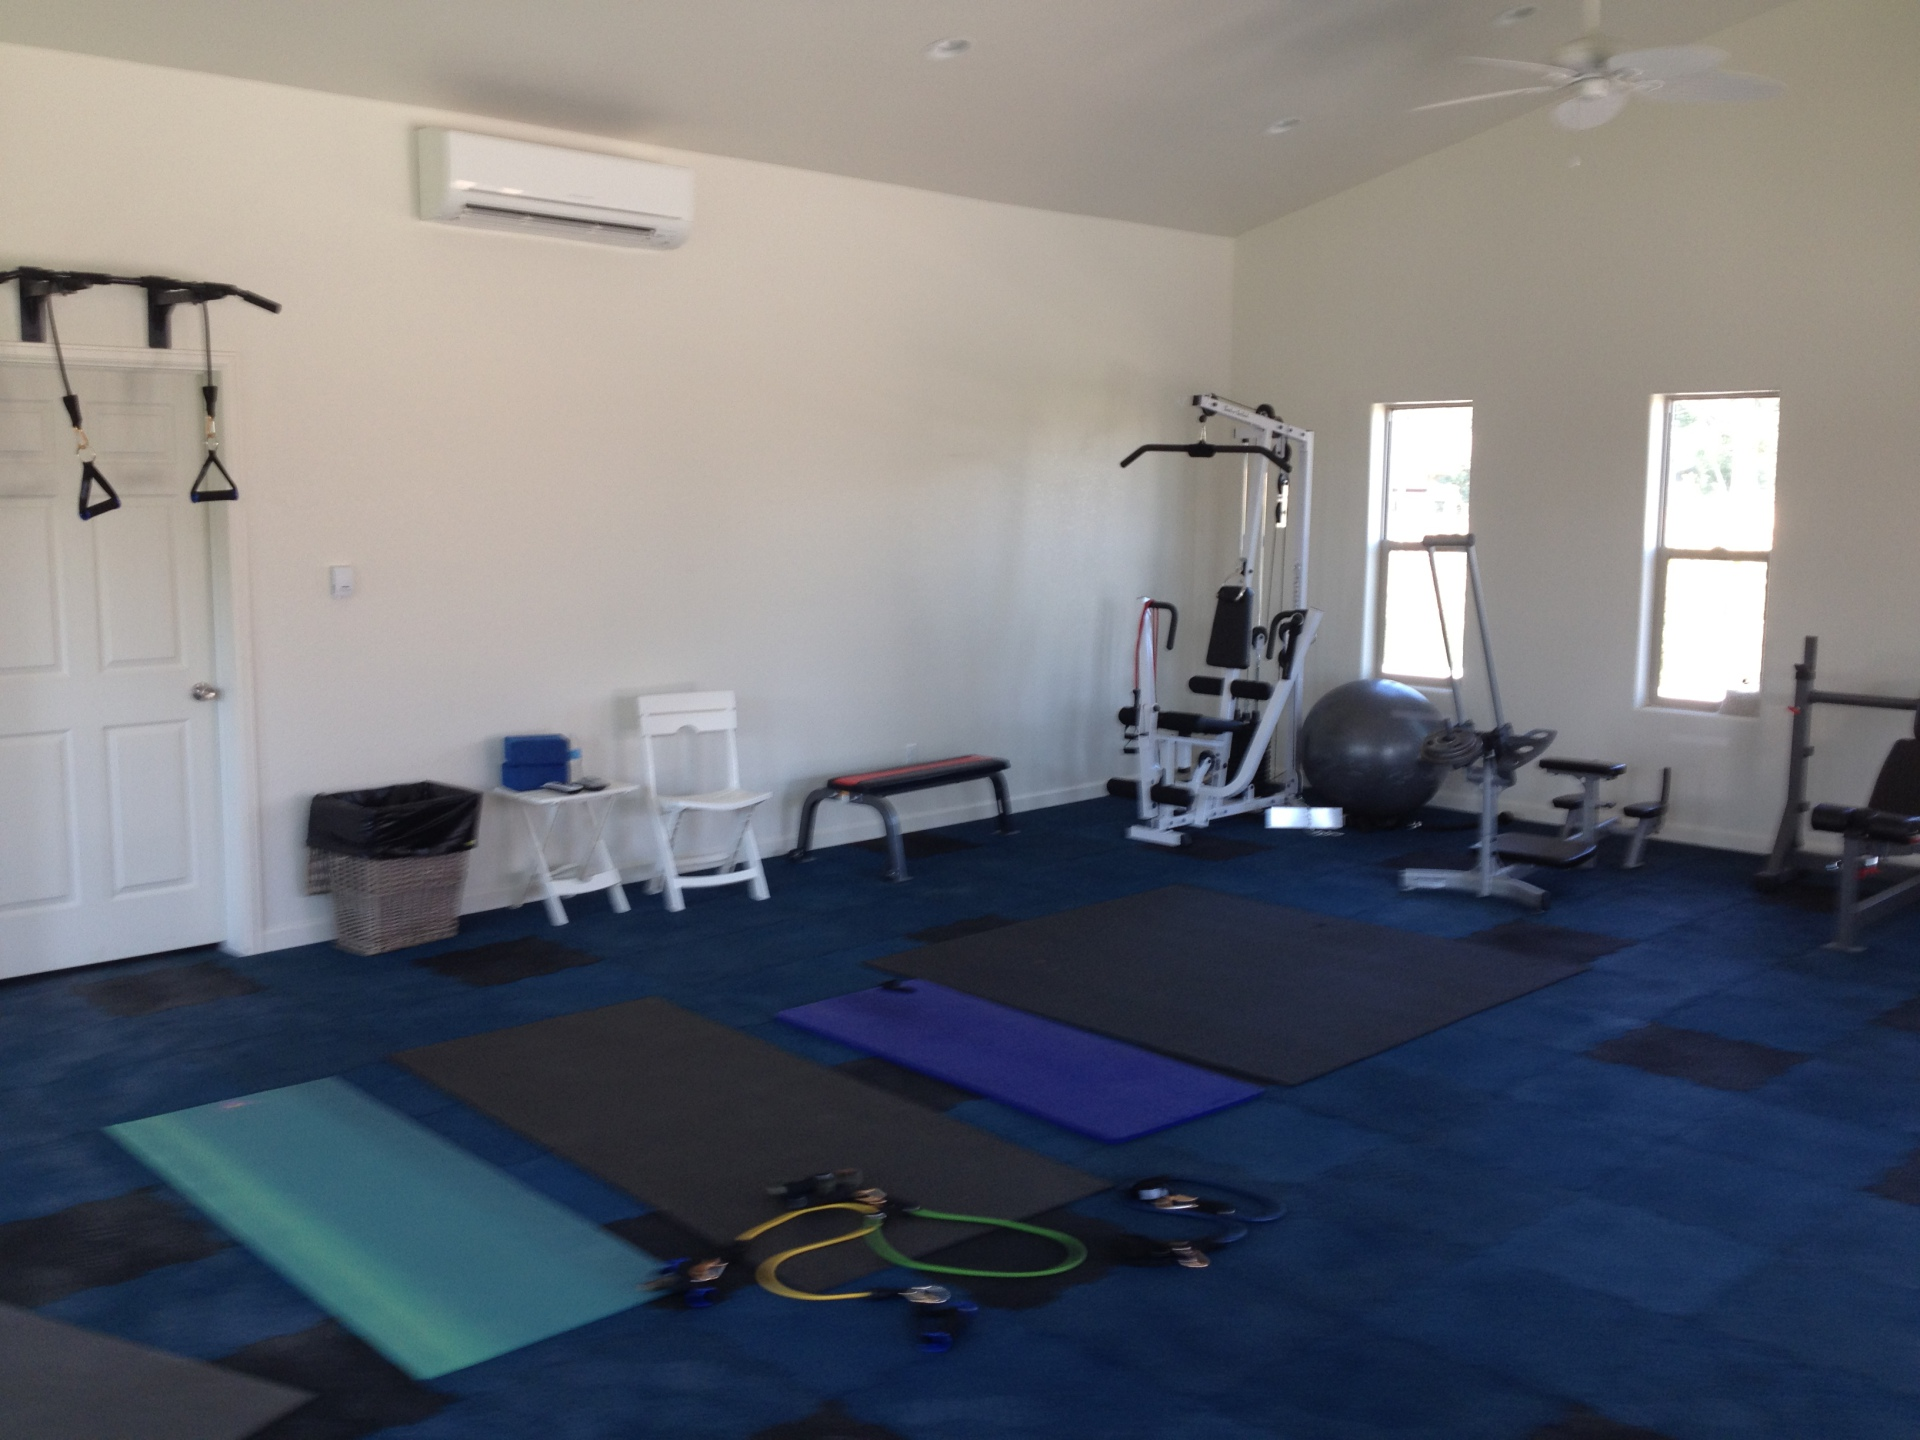 Inside the Pool House Gym